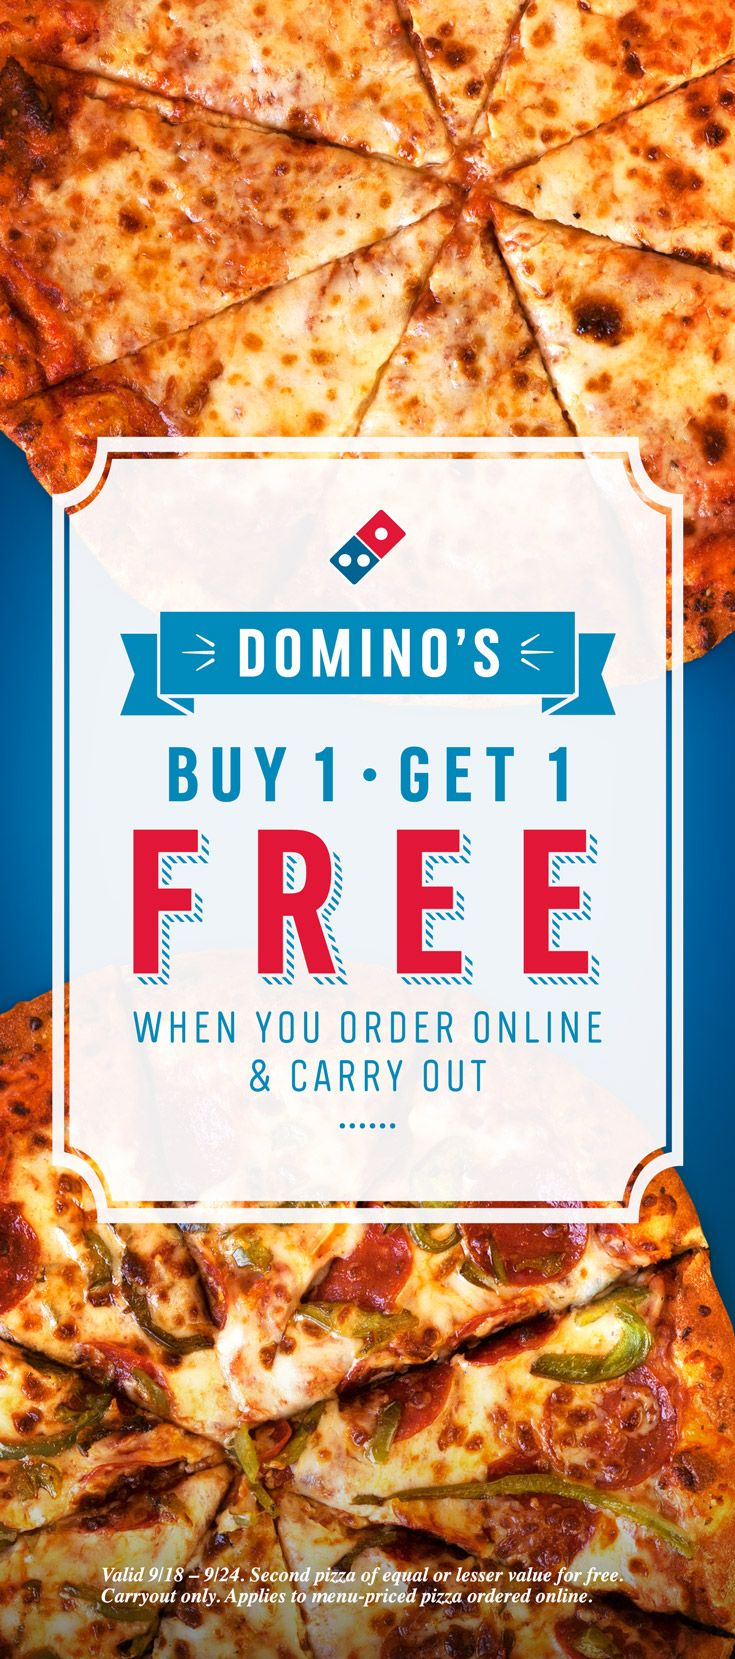 There's no pizza like free pizza. This week only, buy one pizza at menu price and get a second pizza free when you order online and carry out. Valid 9/18 - 9/24.